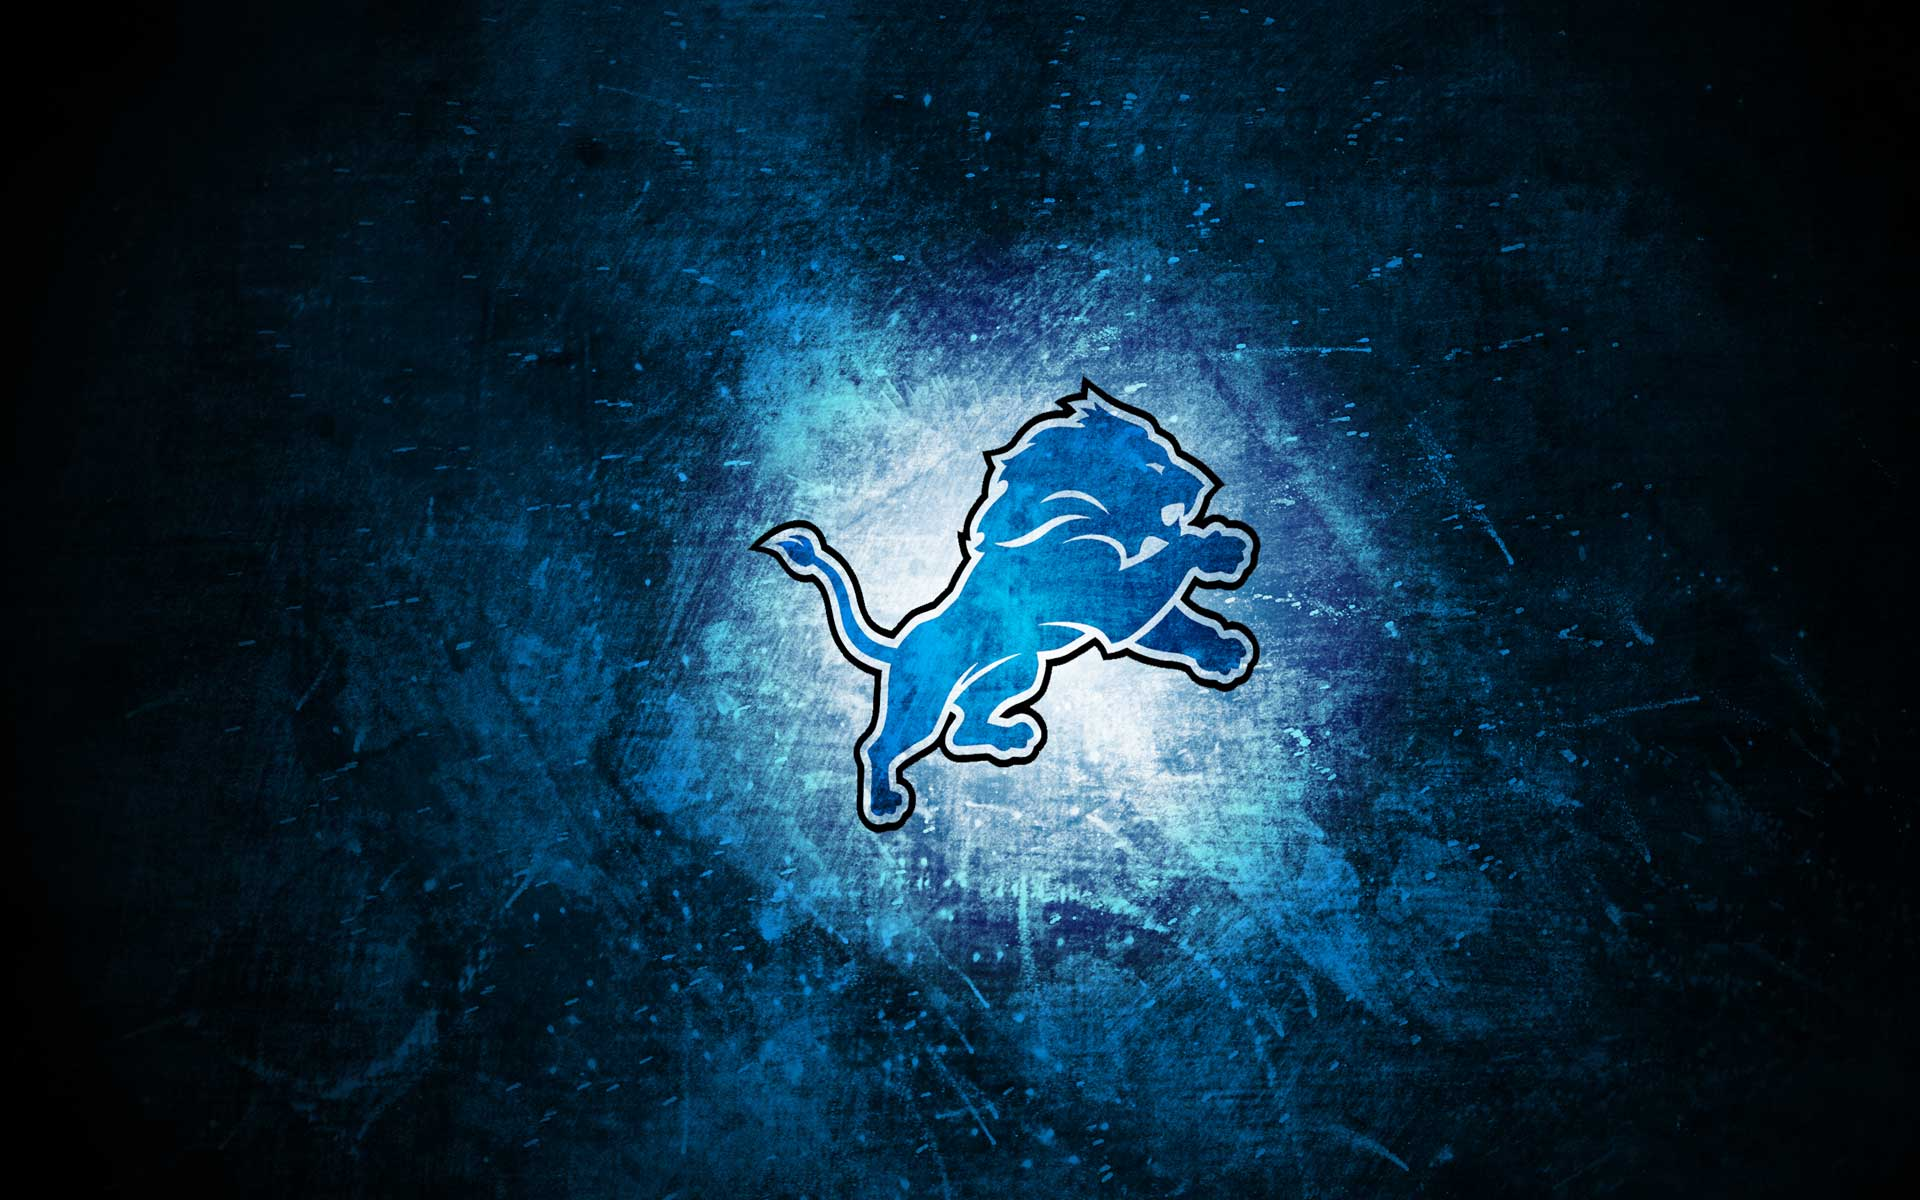 Good Wallpaper Logo Lion - detroit-lions-wallpaper-14642-15106-hd-wallpapers  Graphic_355865.jpg